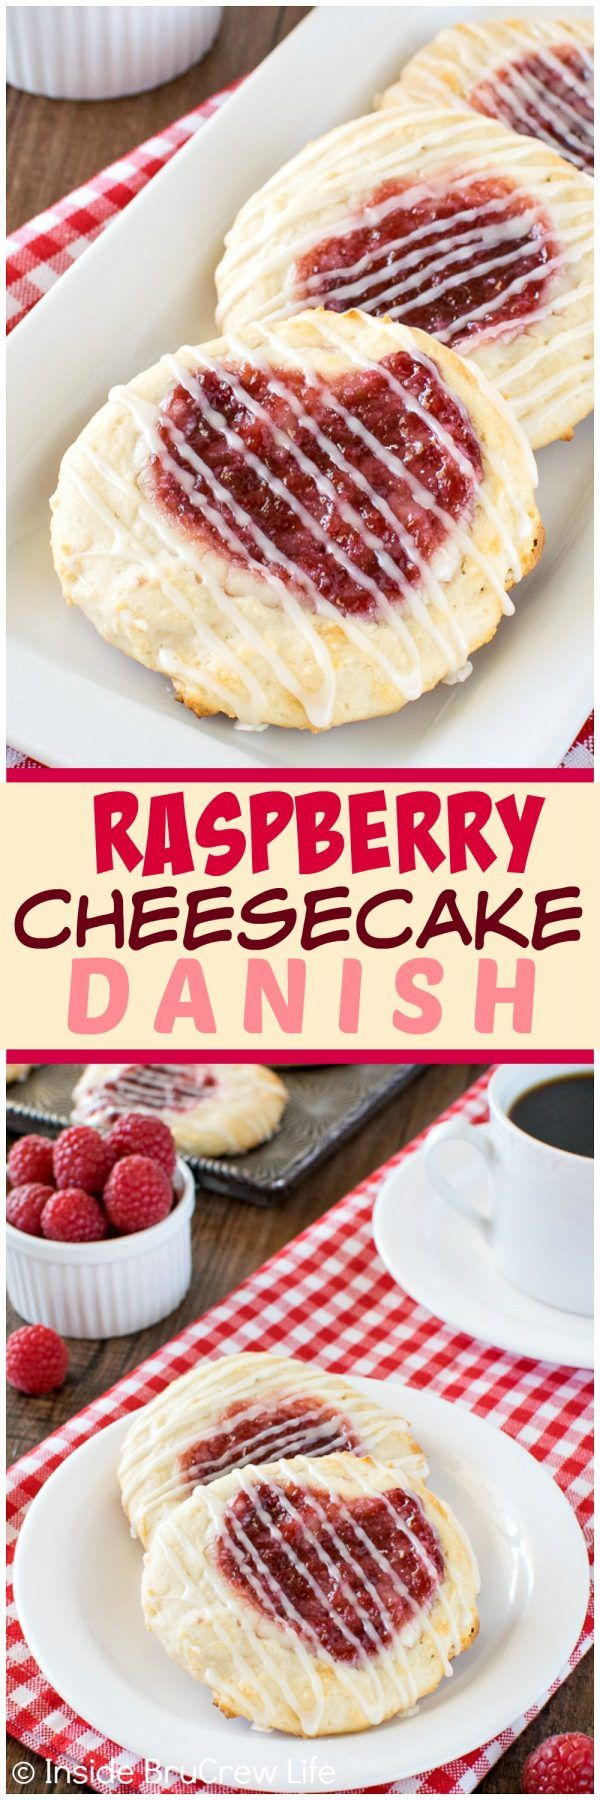 Raspberry Cheesecake Danish - Inside BruCrew Life | a sweet cheesecake and raspberry preserve center makes this easy homemade pastry recipe a great breakfast or after school snack.